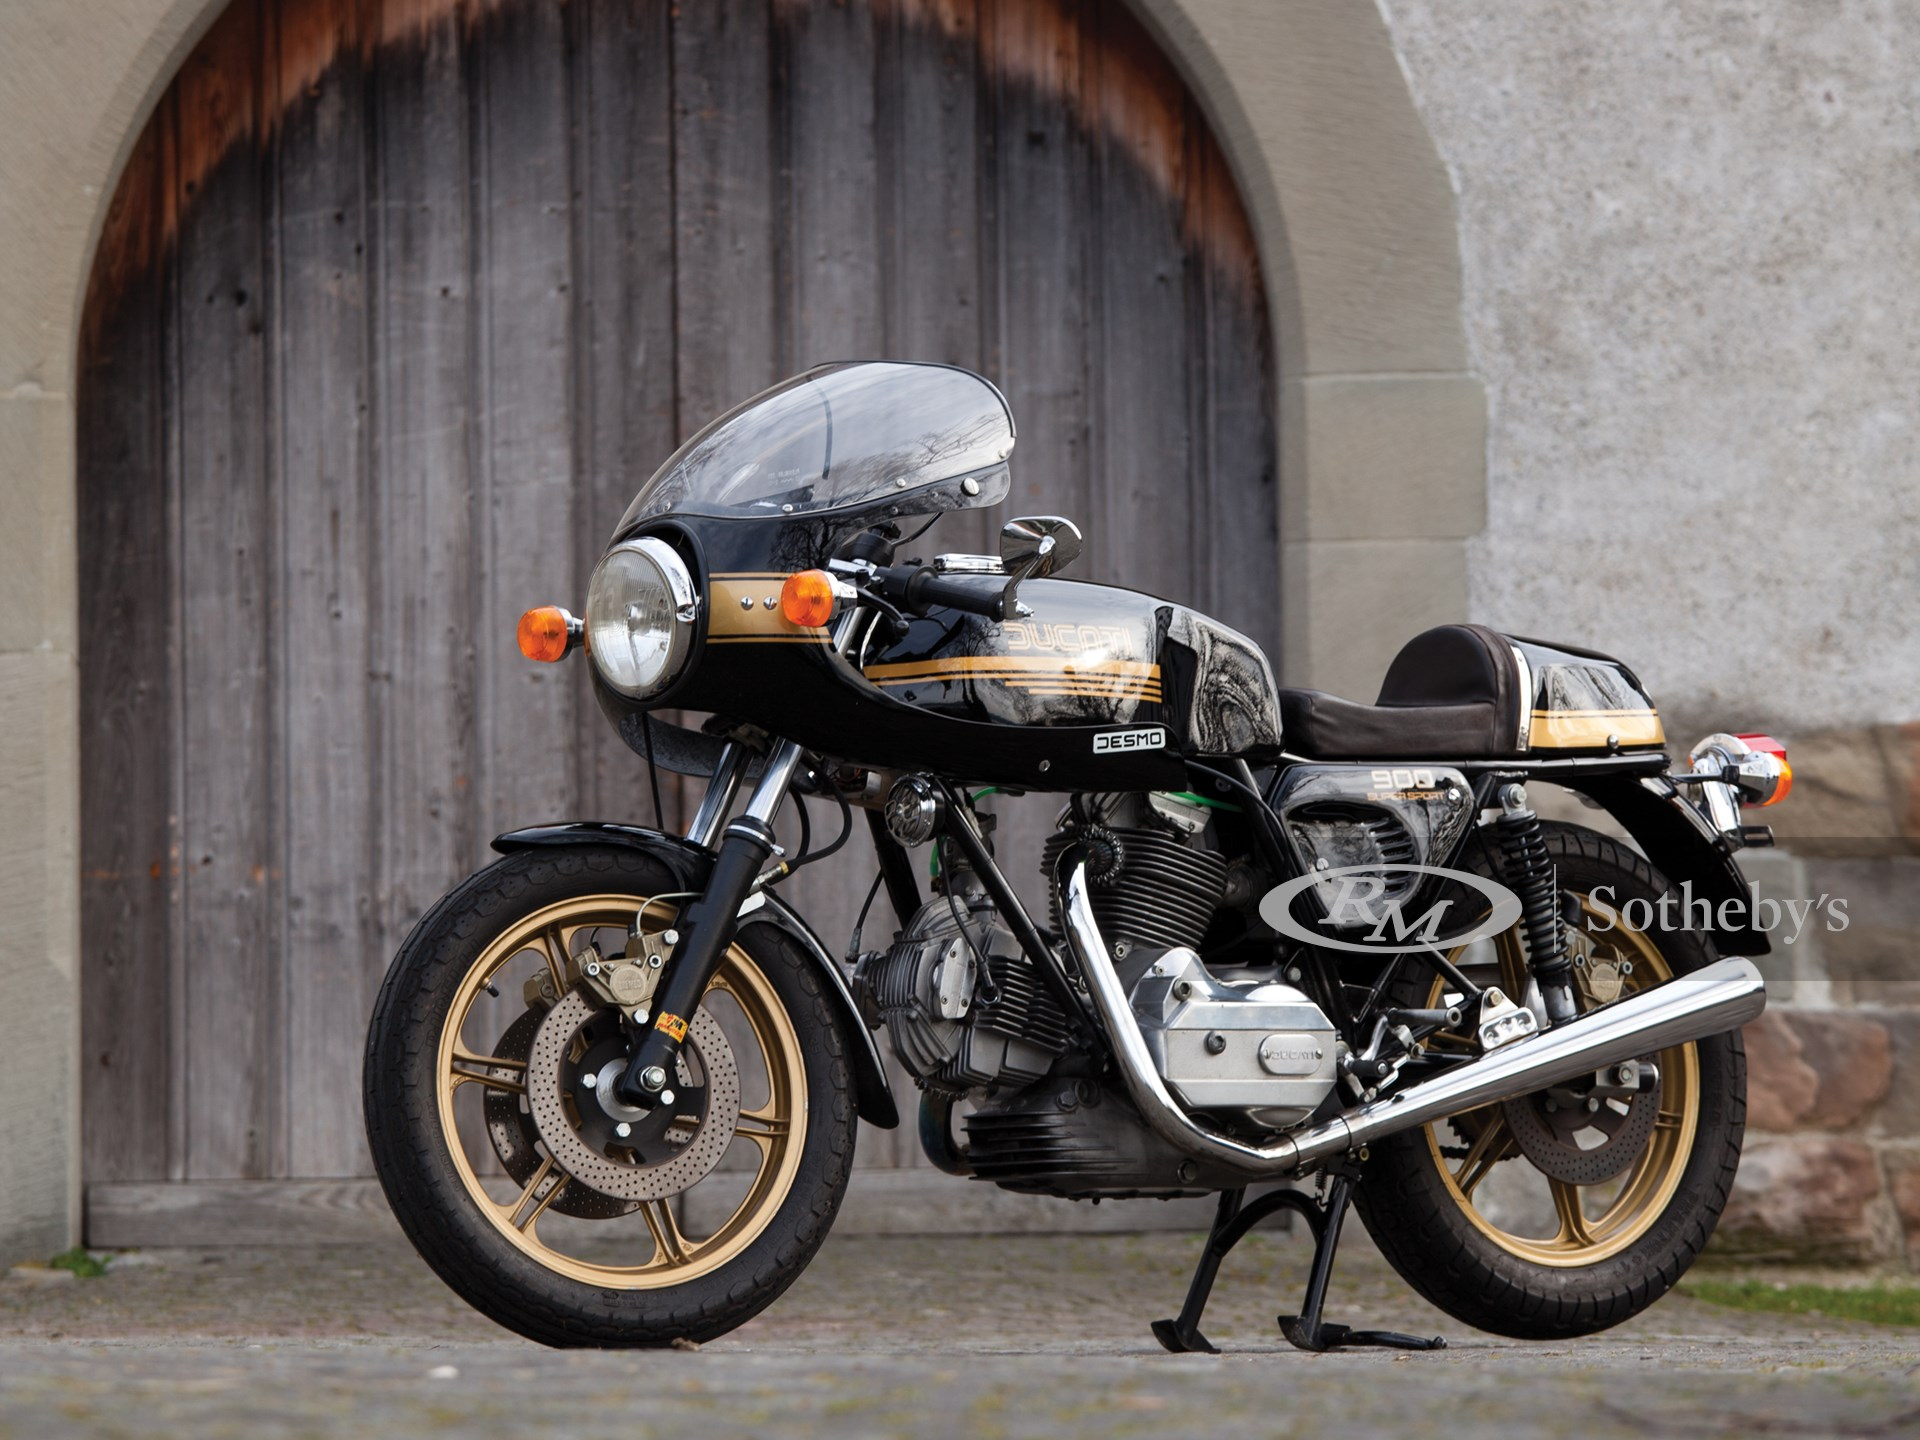 Ducati 900 SuperSport - Ten Things You Should Know